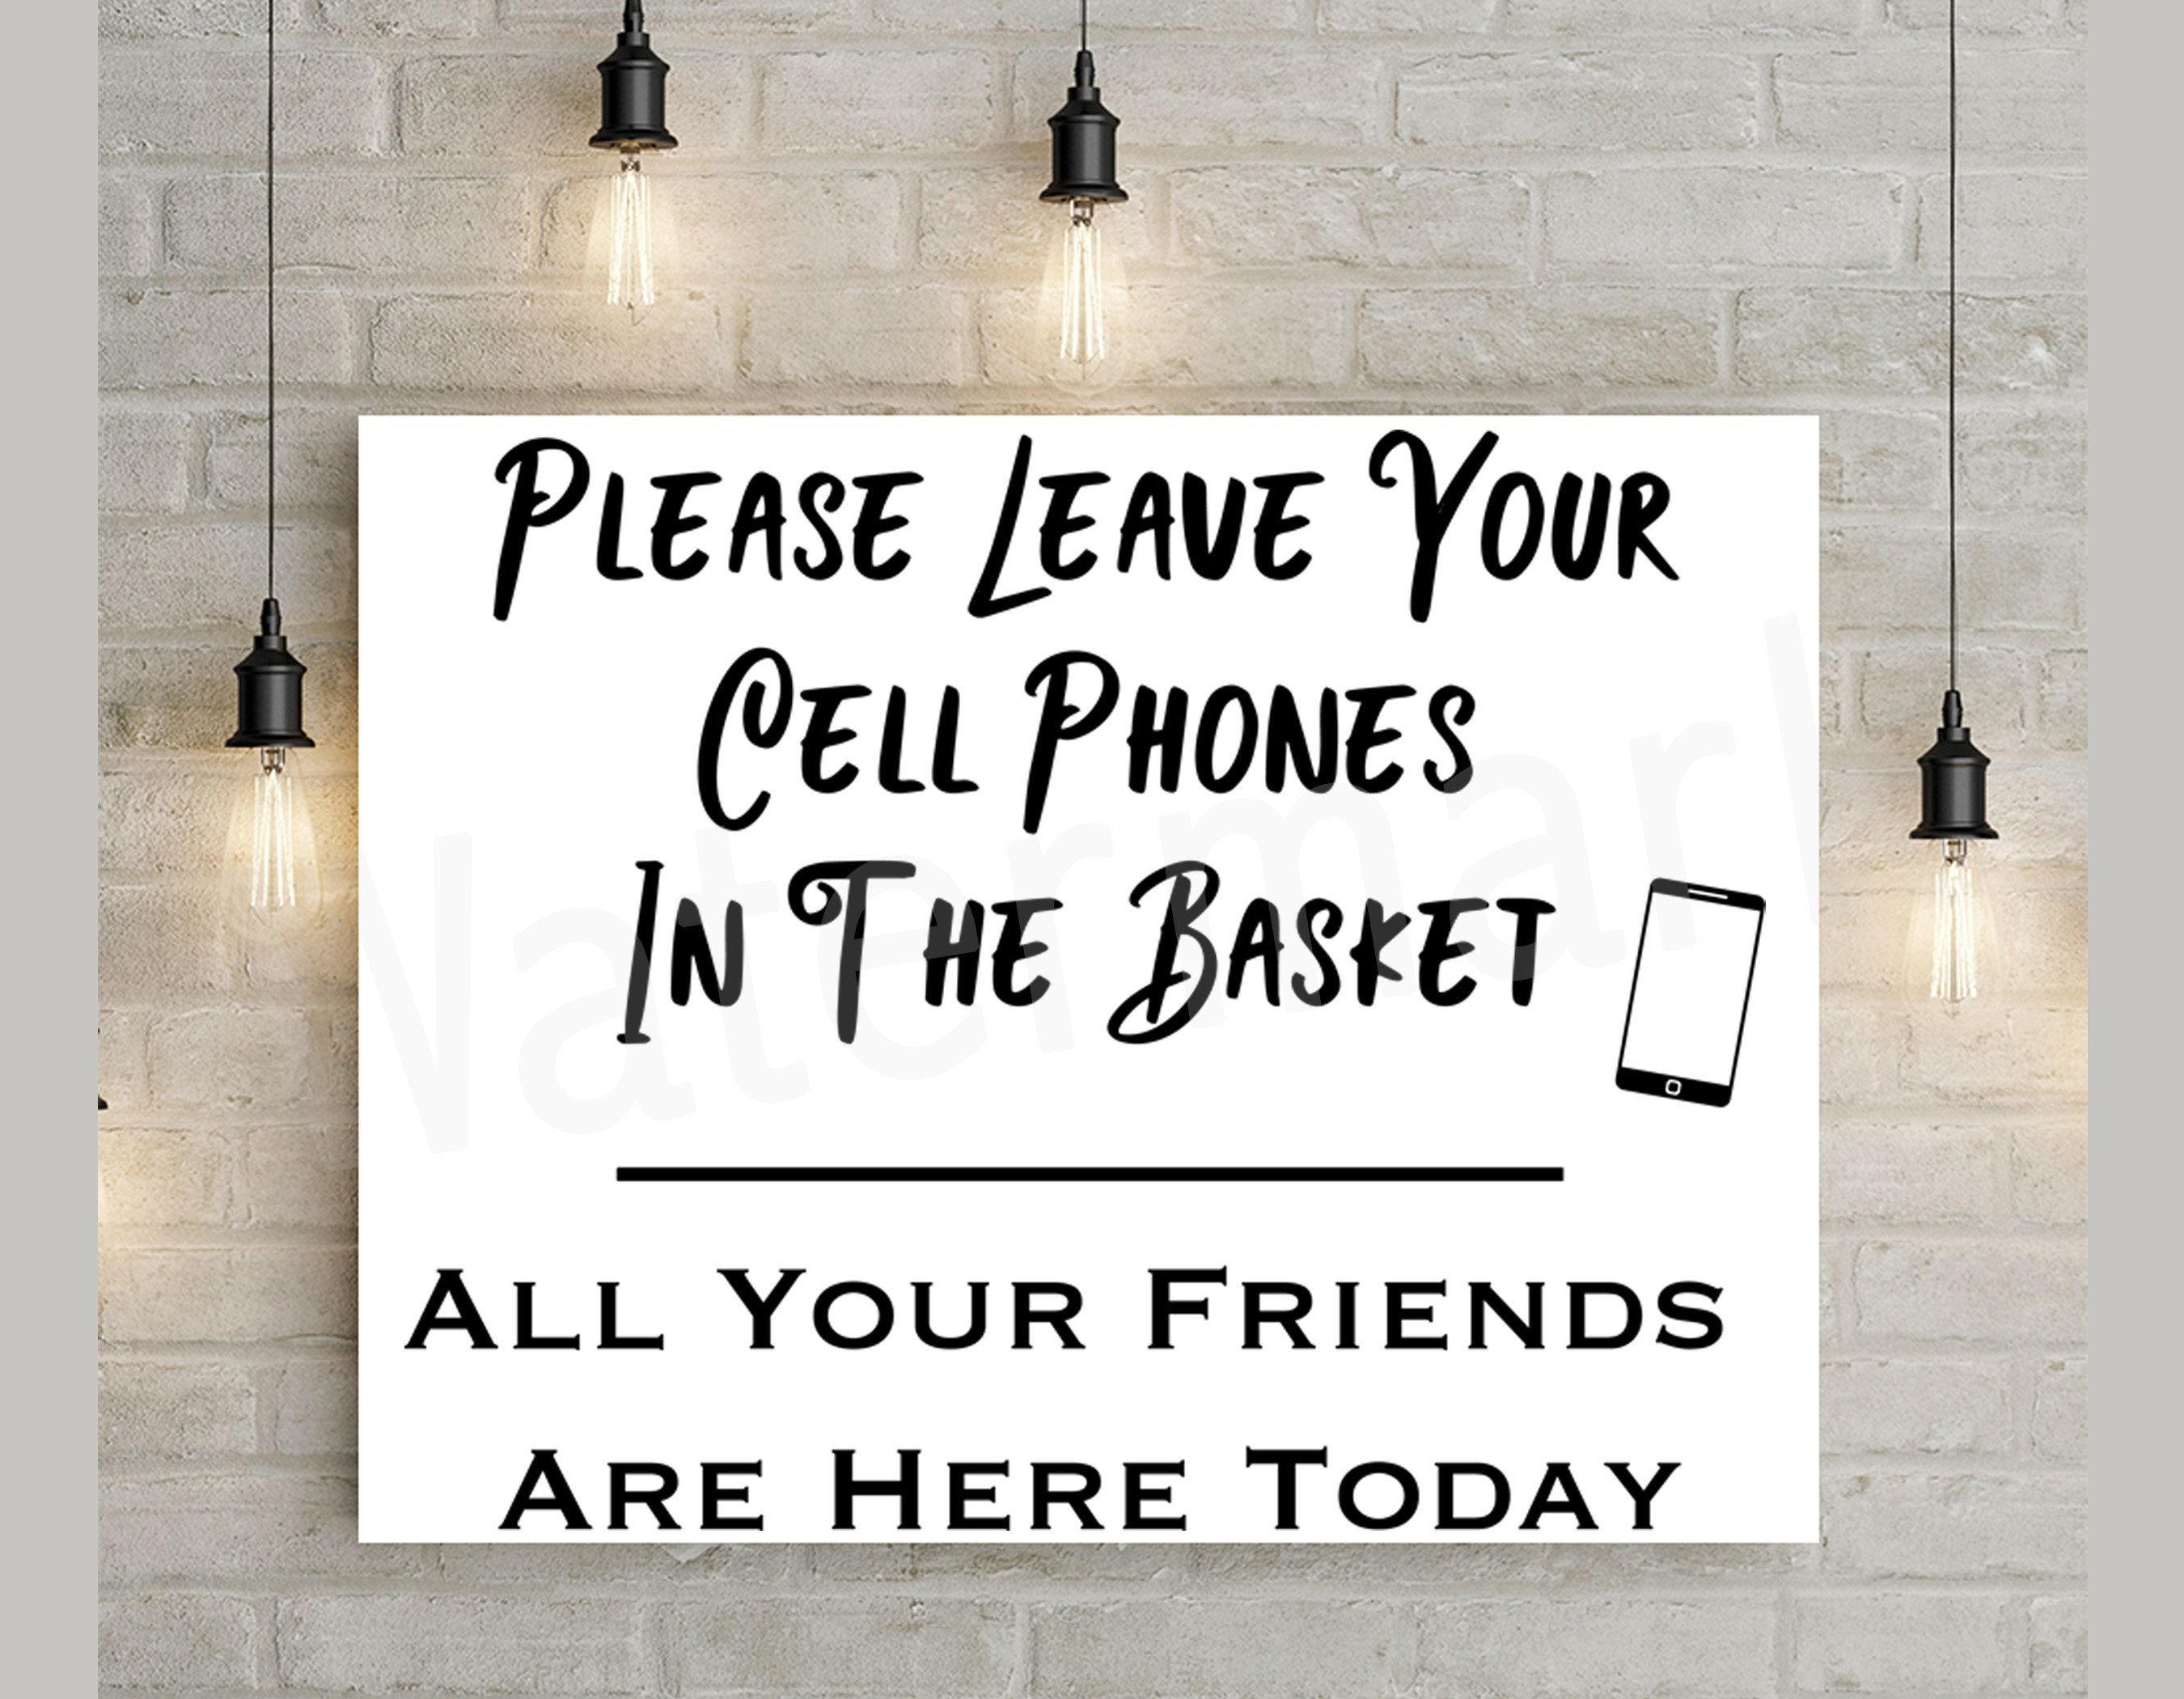 No Cell Phones, Leave Your Cell Phones, Cell Phone Print